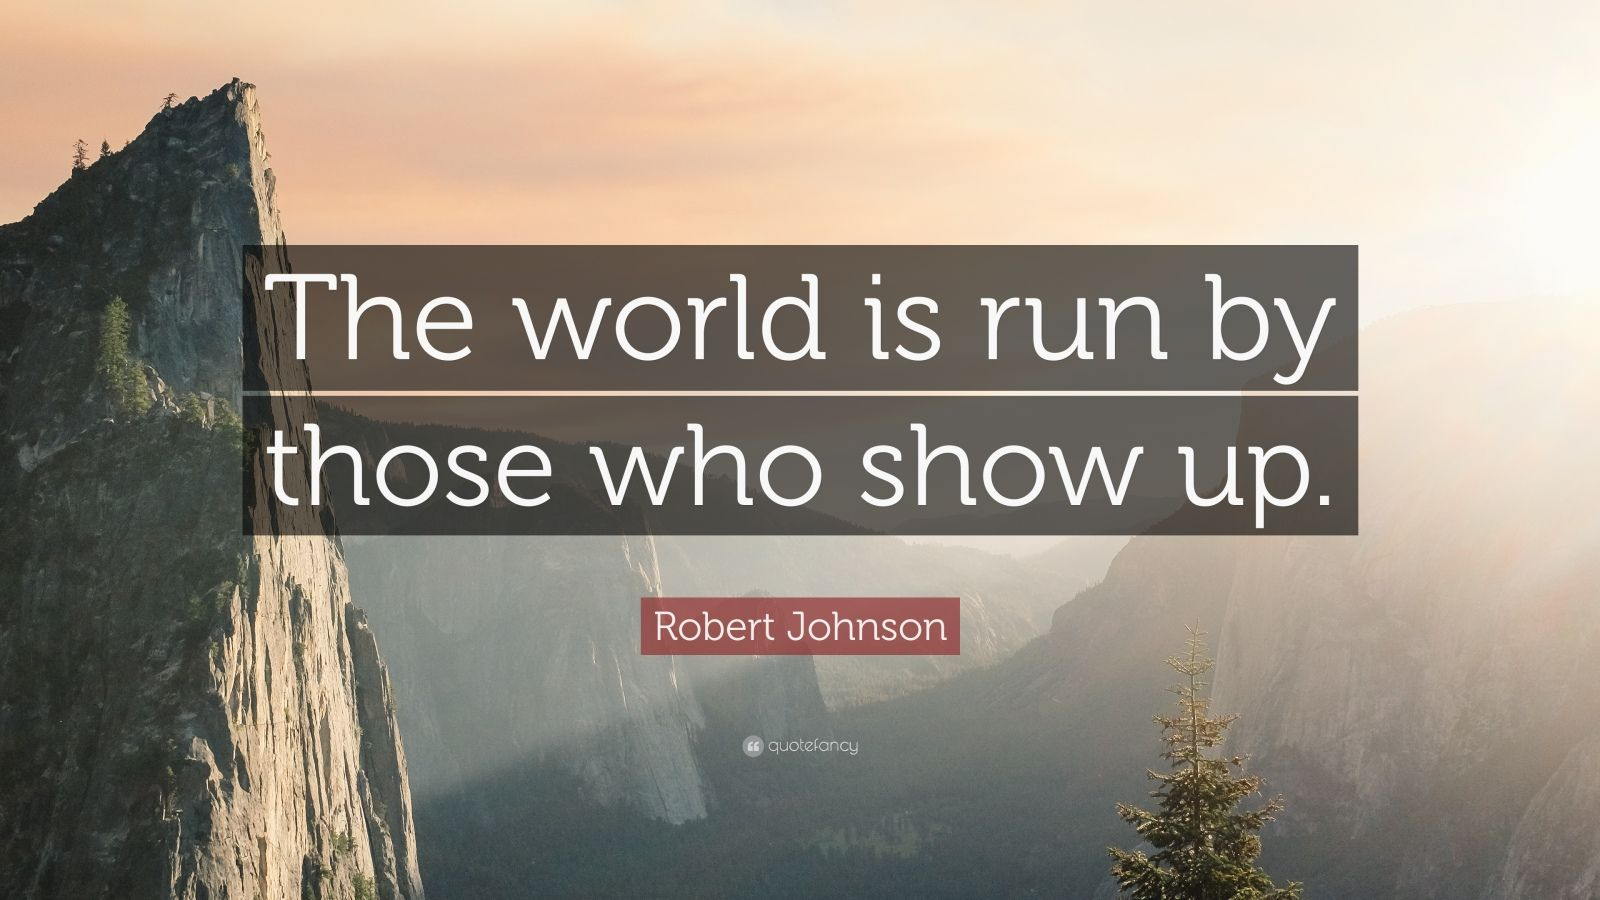 Steve Jobs Motivational Quotes Wallpaper Robert Johnson Quote The World Is Run By Those Who Show